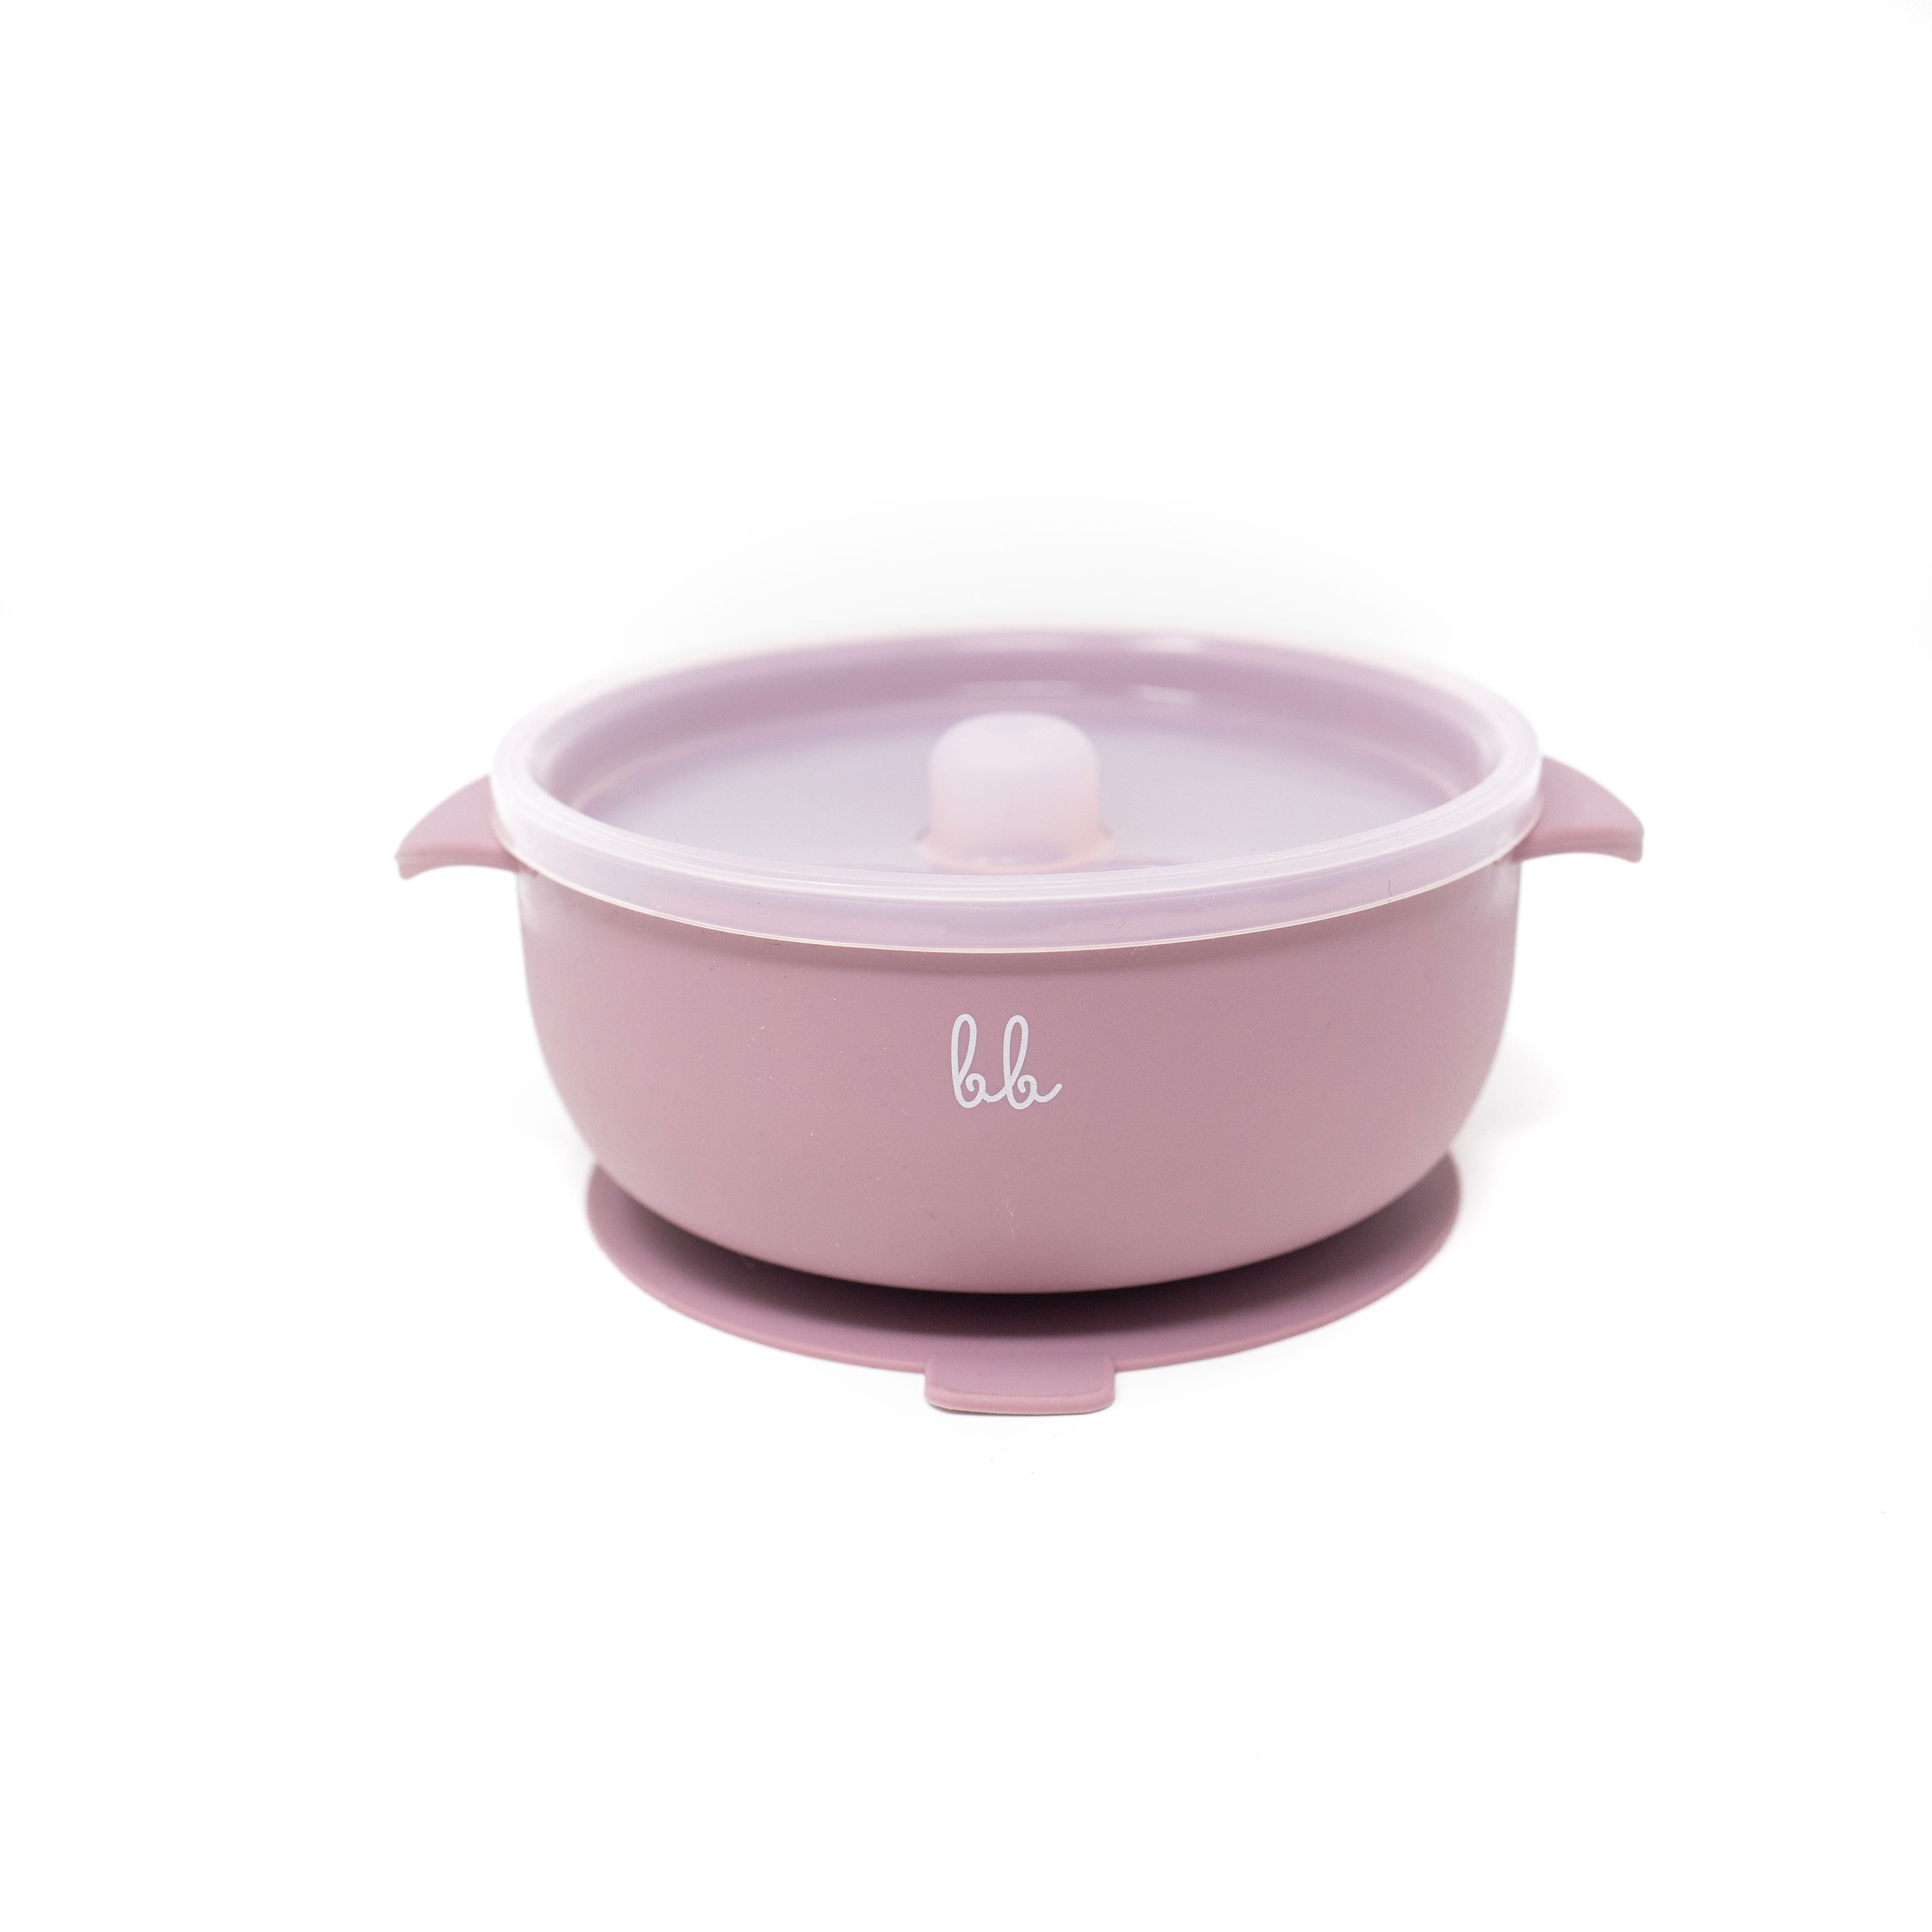 Baby Bar & Co. Suction Bowl with Lid